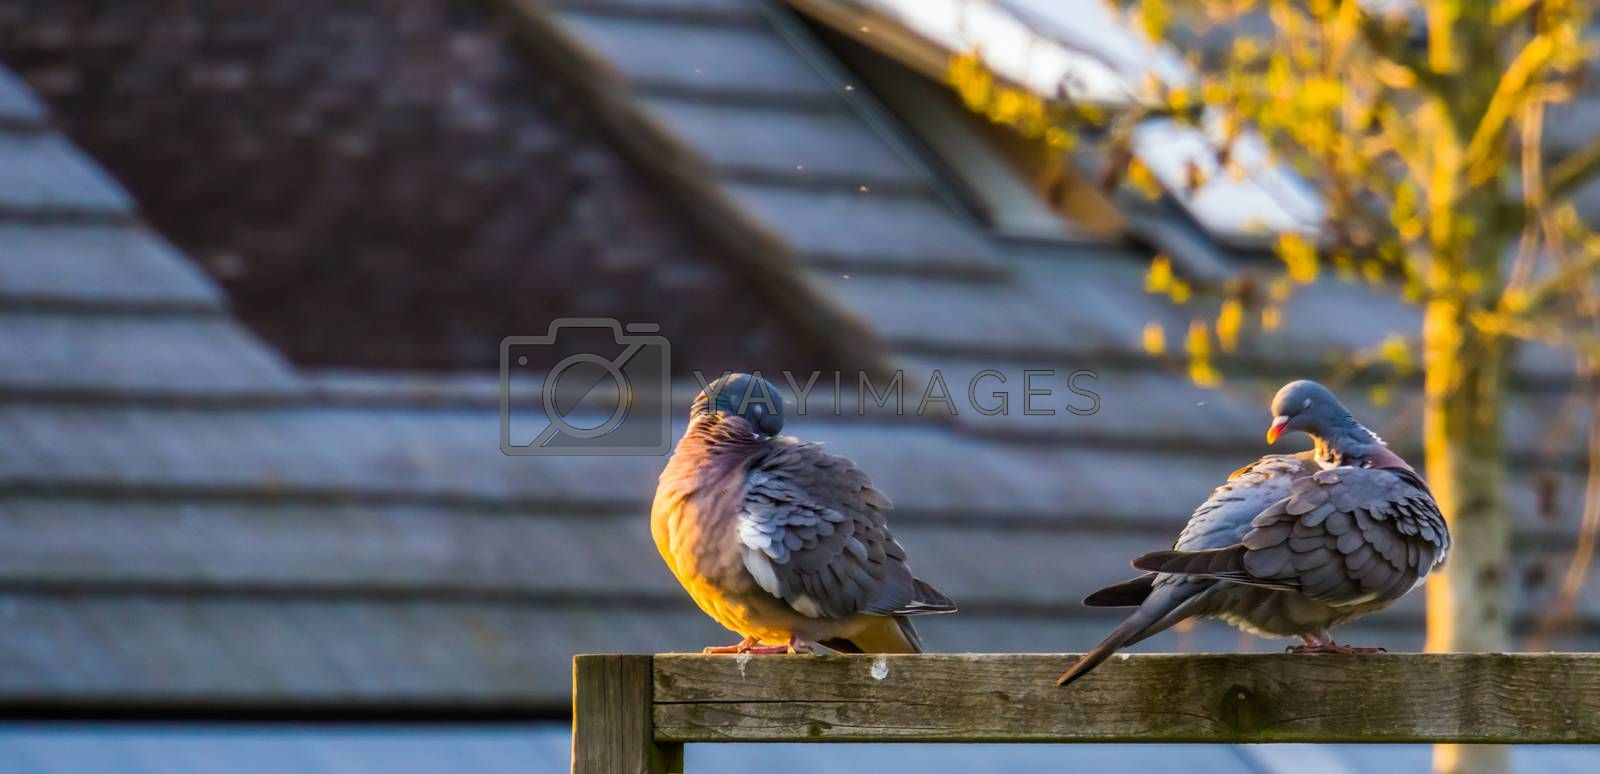 common wood pigeons sitting together and preening their feathers, common birds in europe